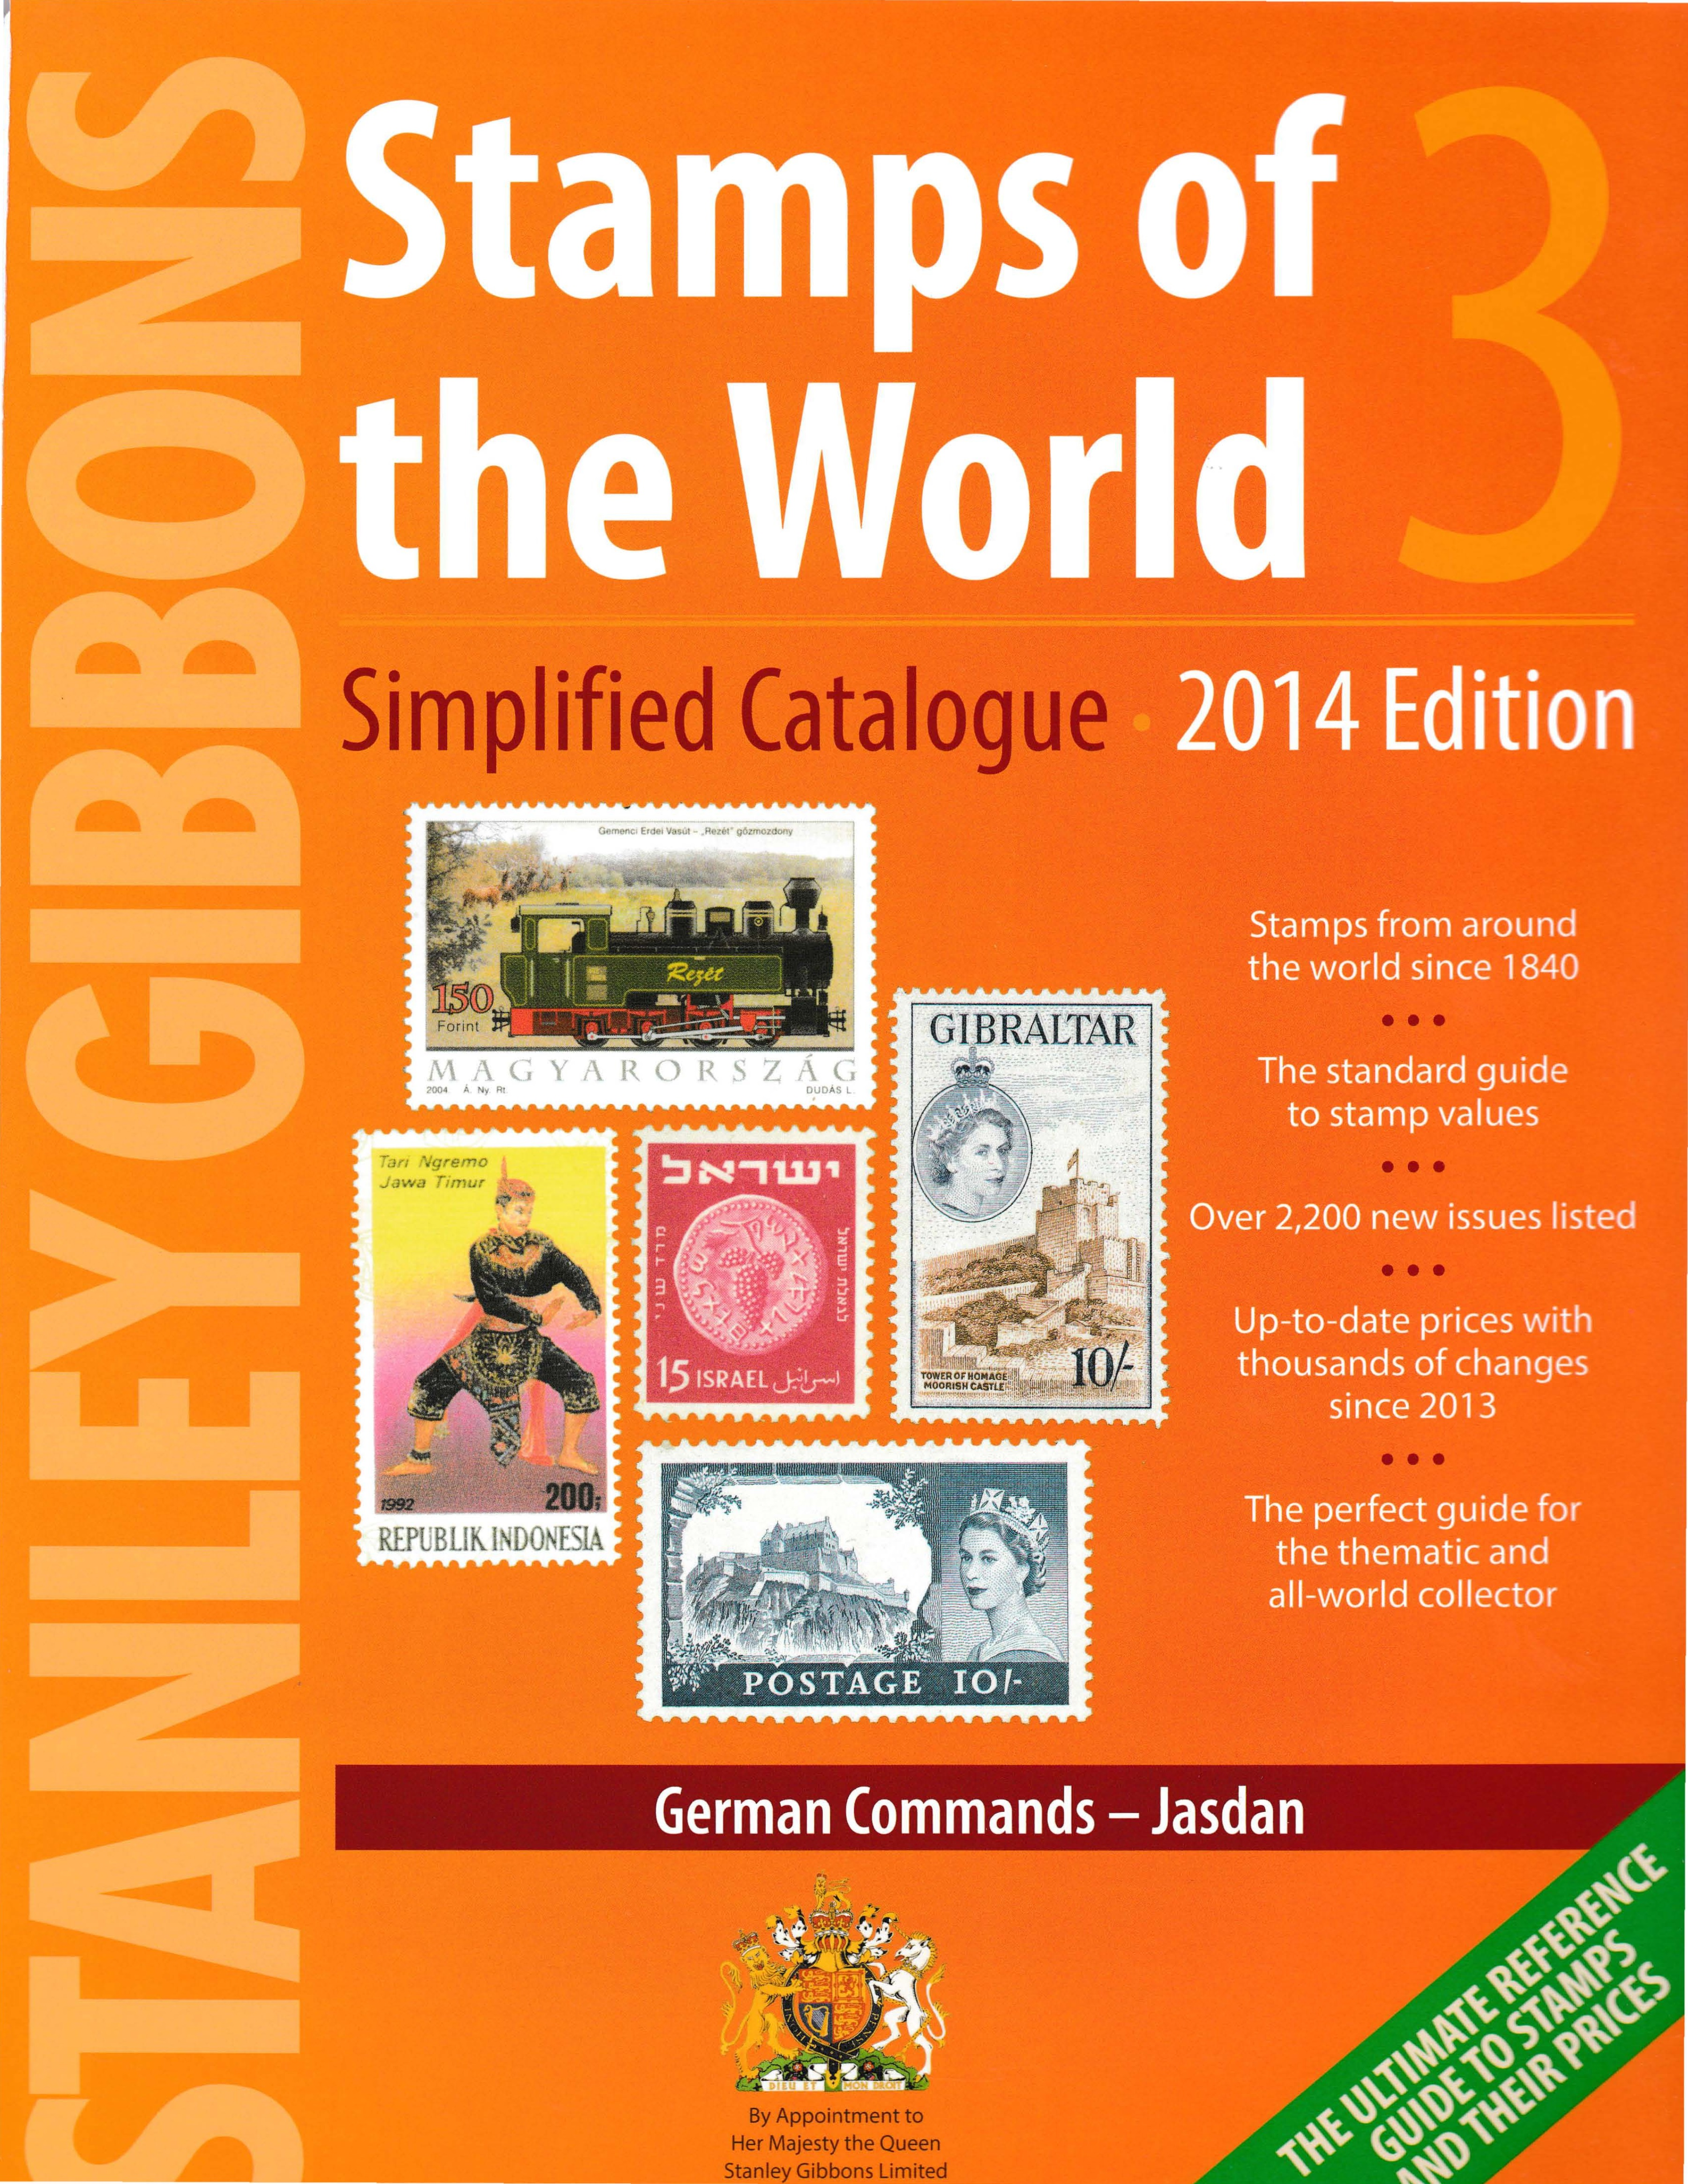 Stanley Gibbons Stamps of the World - Simplified Volume 3, 2014 edition